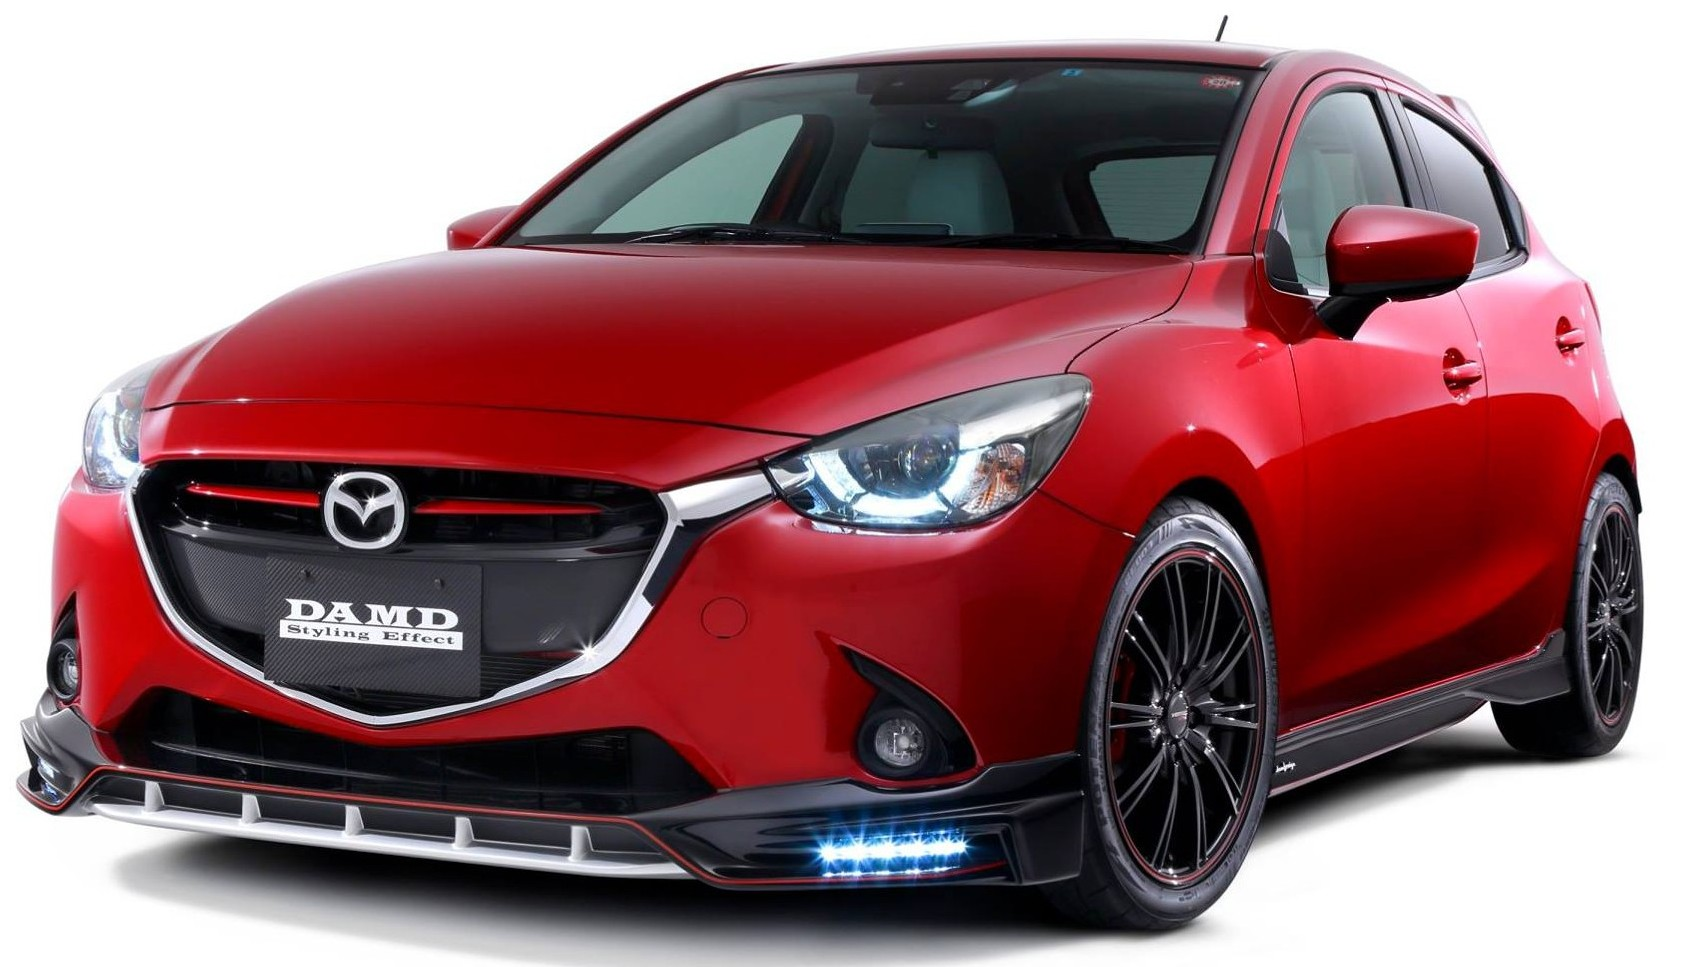 mazda 2 and cx 3 fitted with damd body kits in japan. Black Bedroom Furniture Sets. Home Design Ideas